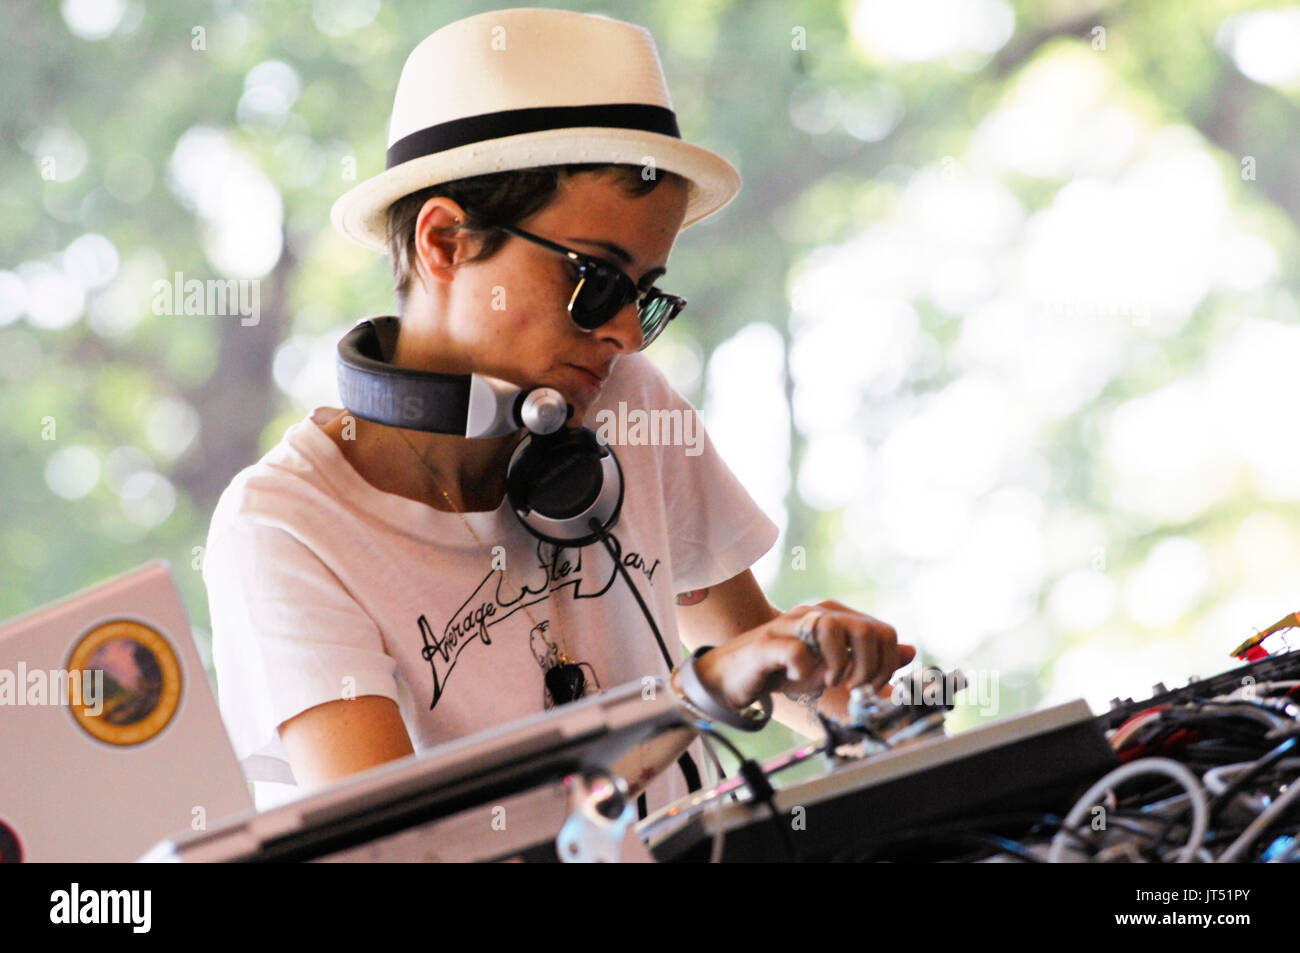 DJ Samantha Ronson performs 2008 Lollapalooza Music Festival Grant Park Chicago. - Stock Image